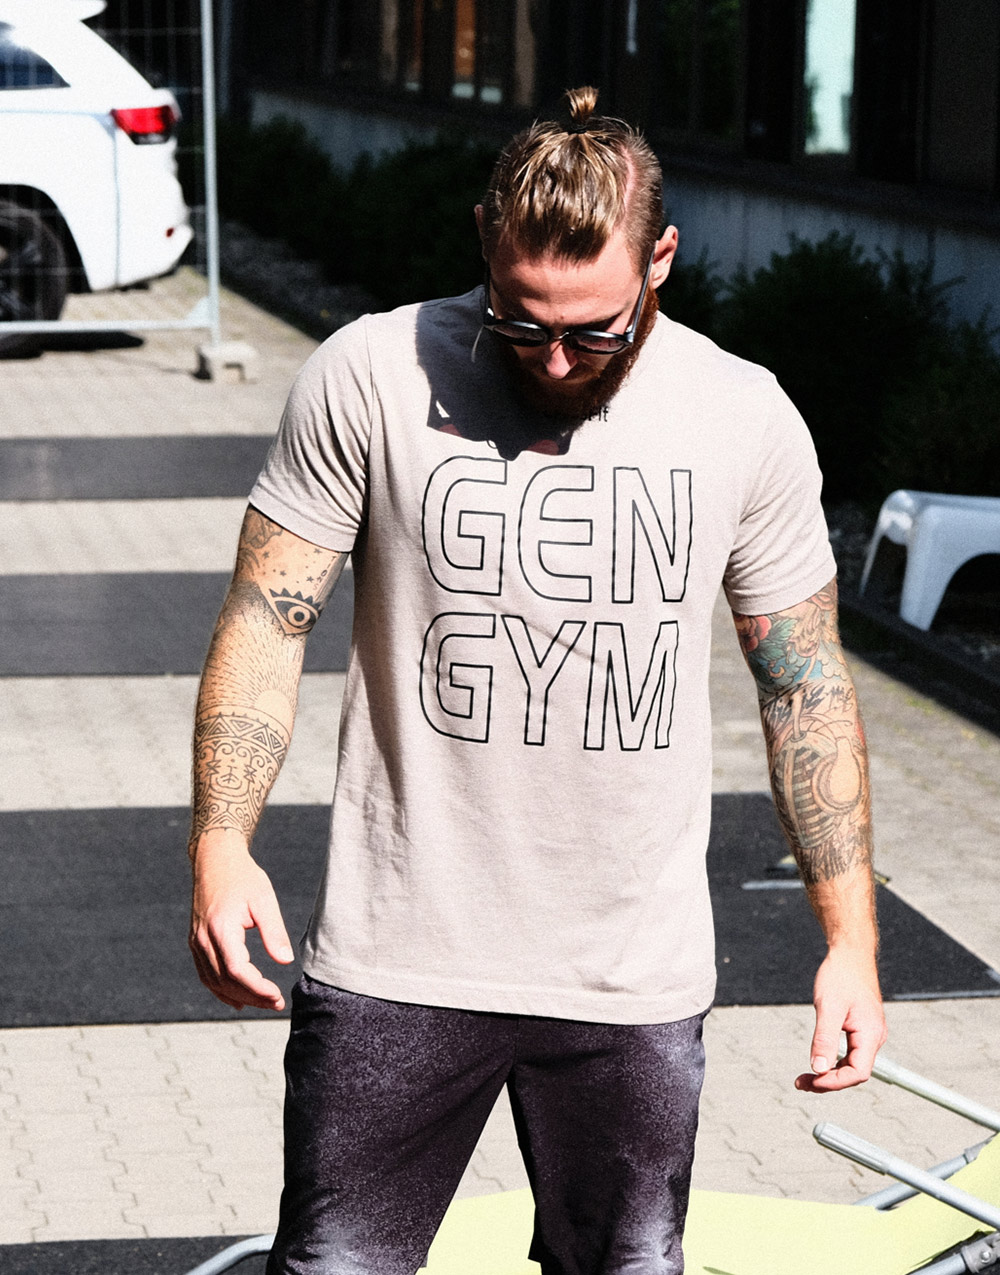 GEN GYM Shirt